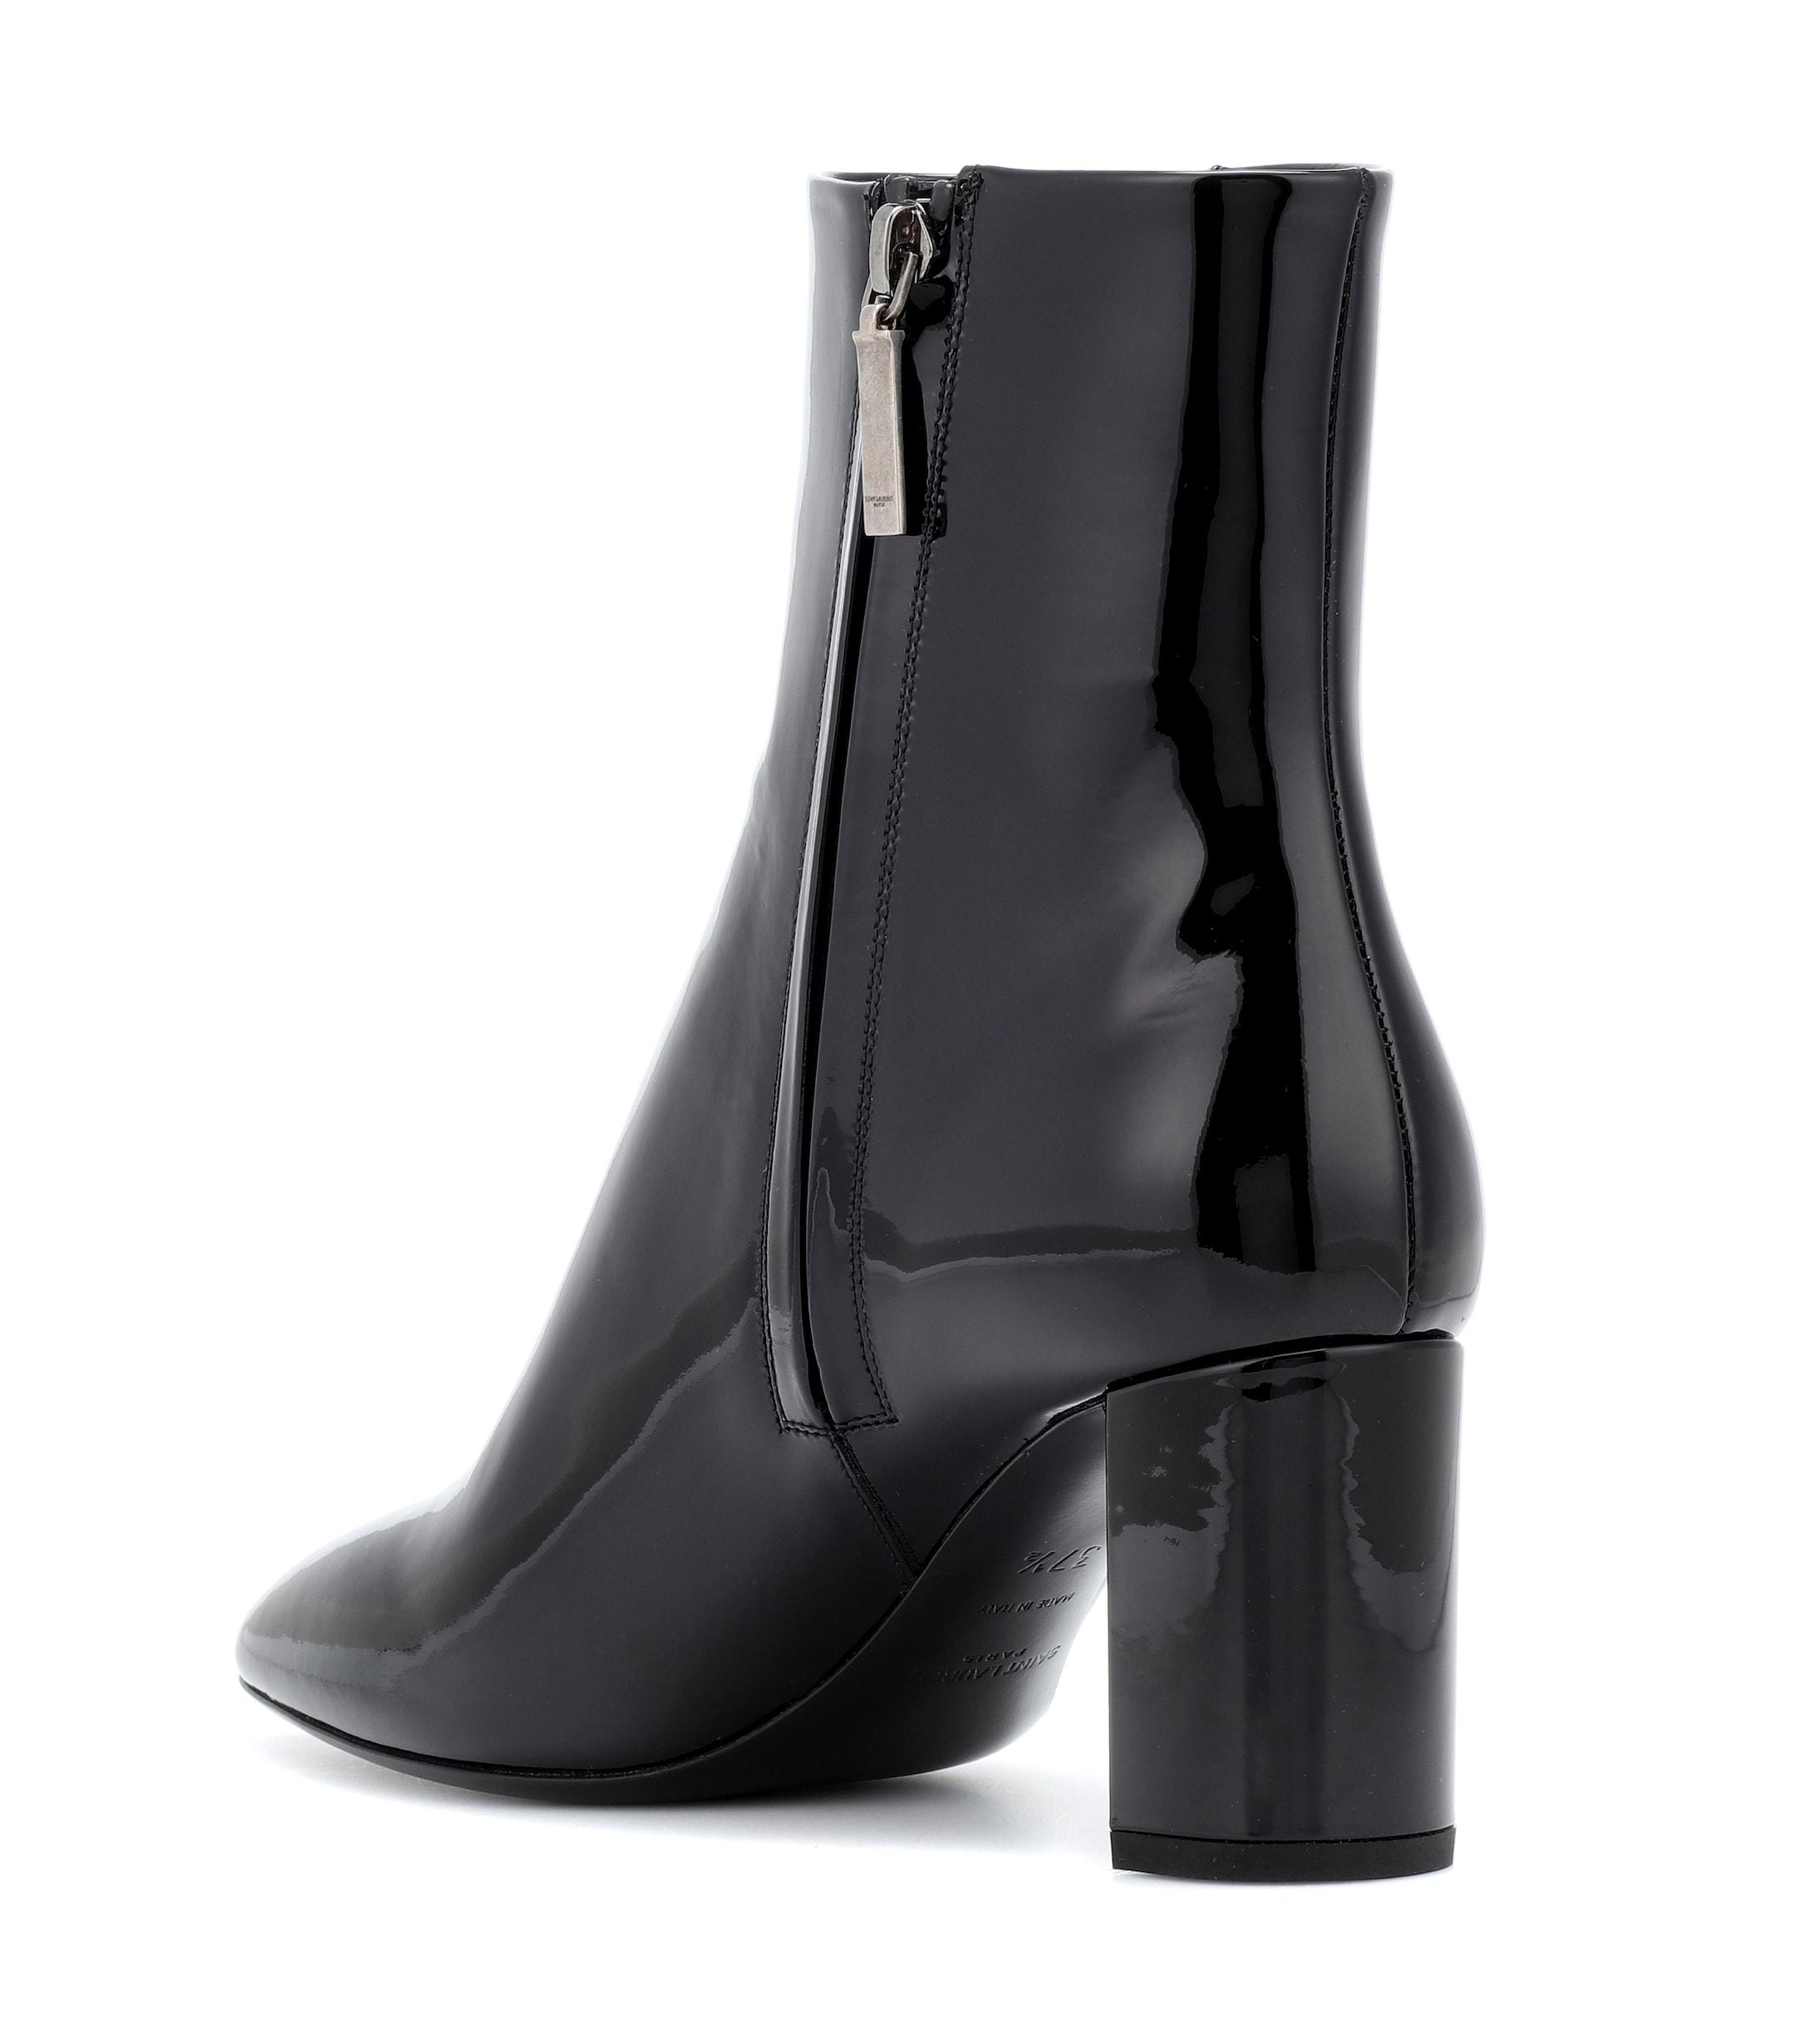 22388c5ce4d Saint Laurent Lou 70 Patent Leather Ankle Boots in Black - Lyst